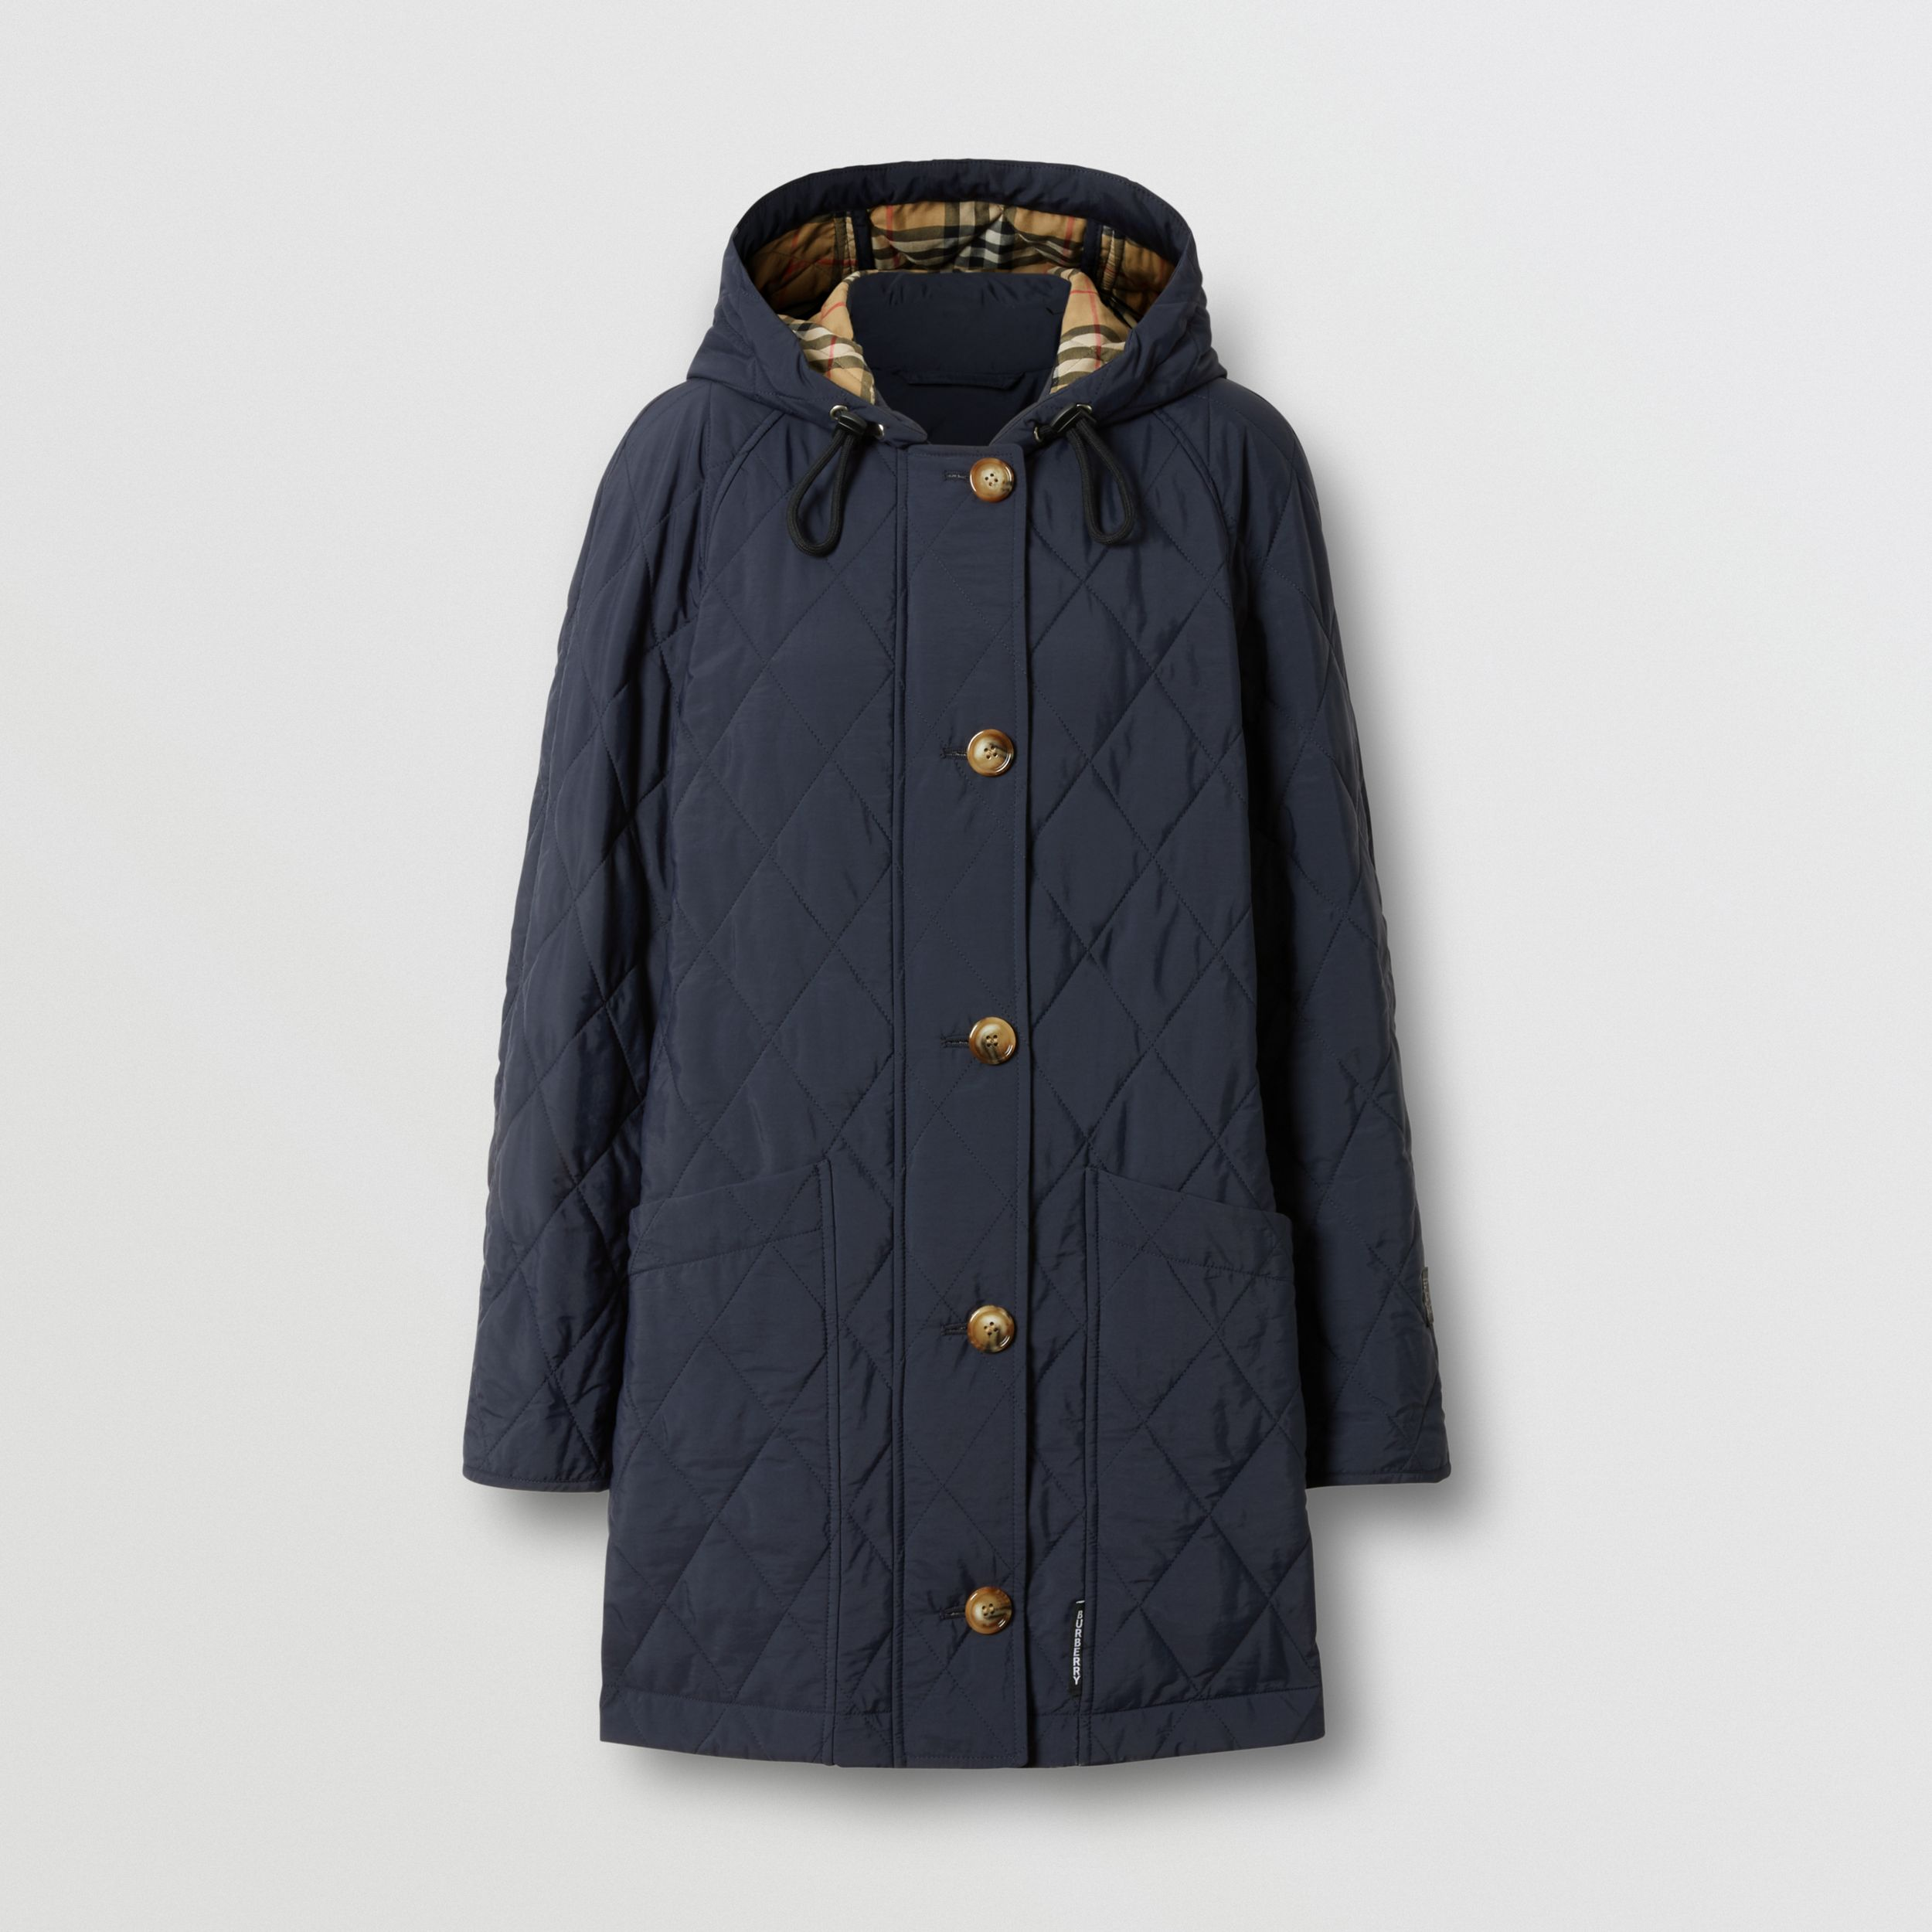 Diamond Quilted Thermoregulated Hooded Coat in Navy - Women | Burberry - 4